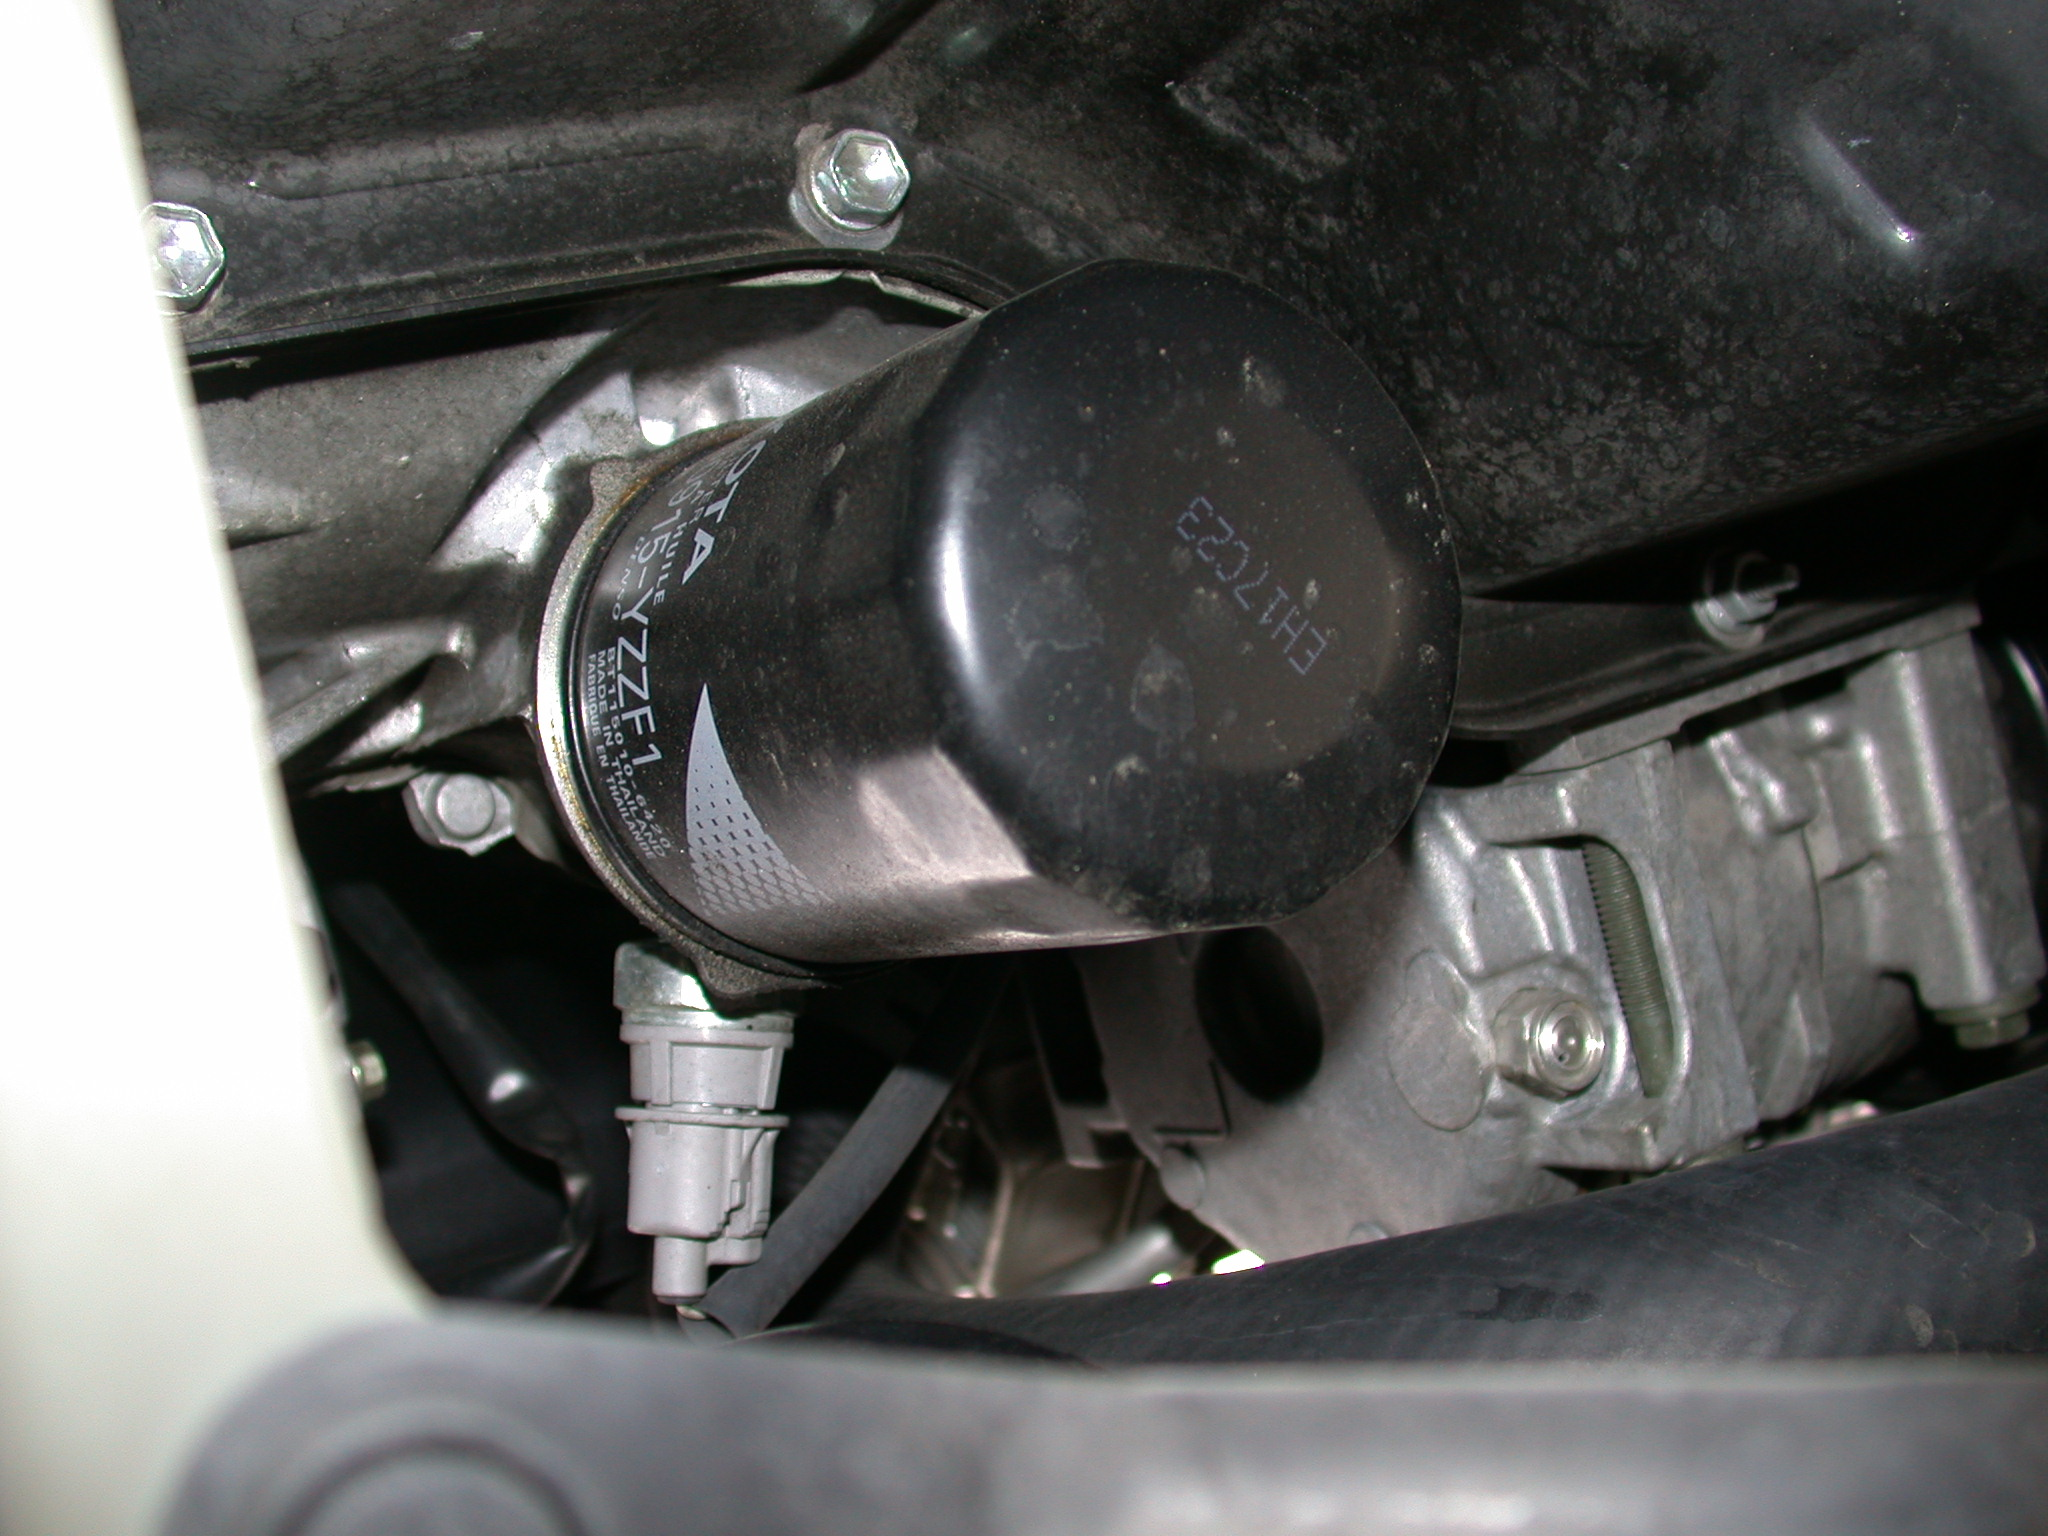 Car Solenoid Replacement Cost